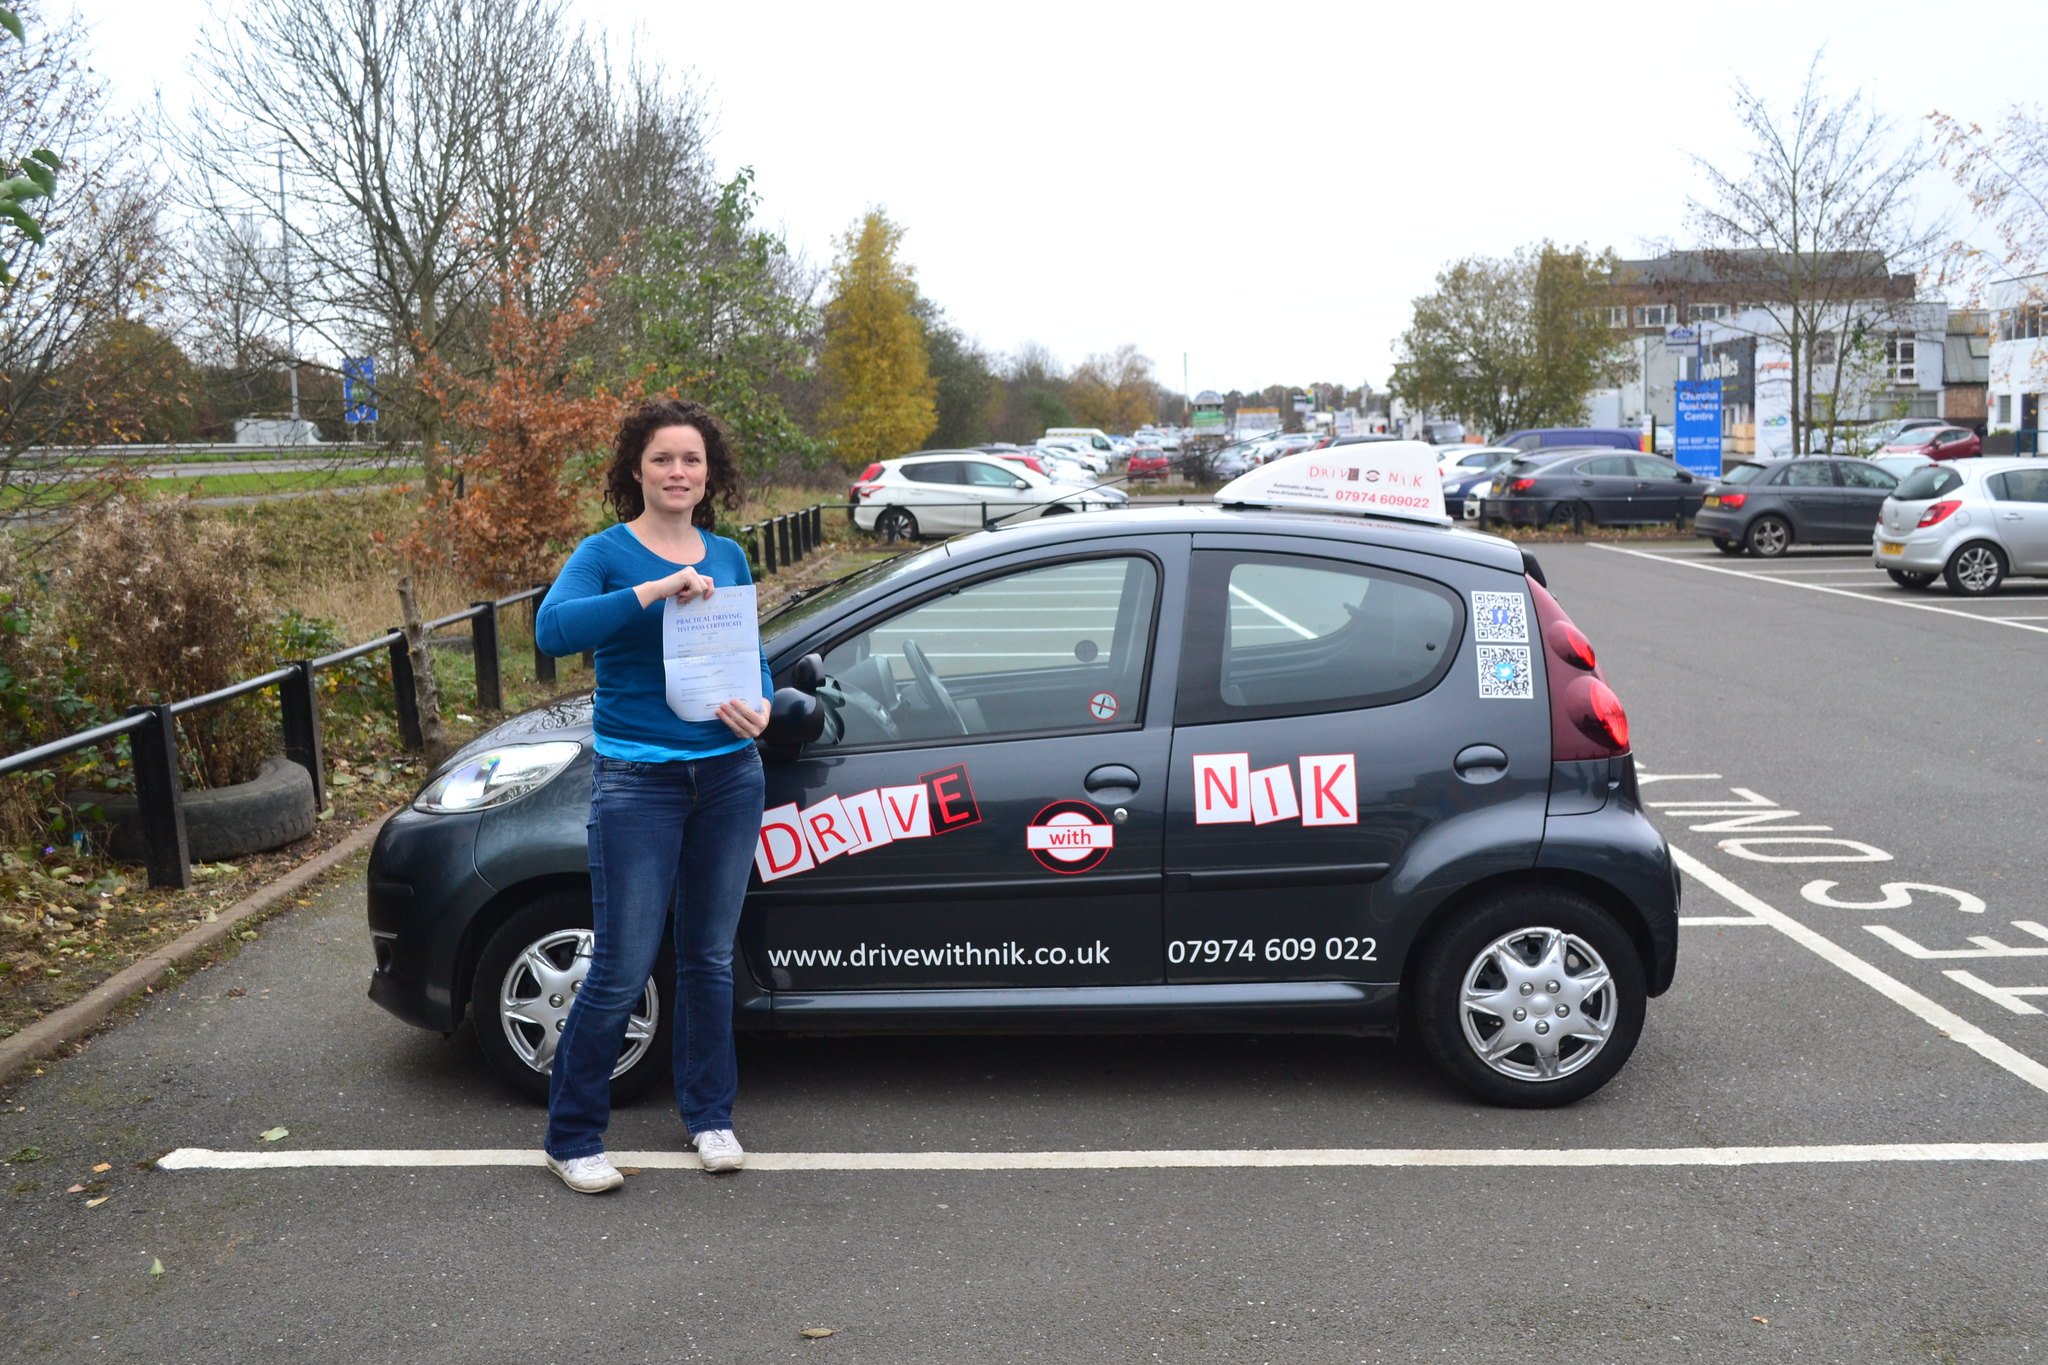 Manual driving lessons Woodside Park Lucie passed her practical driving test first time with Drive with Nik